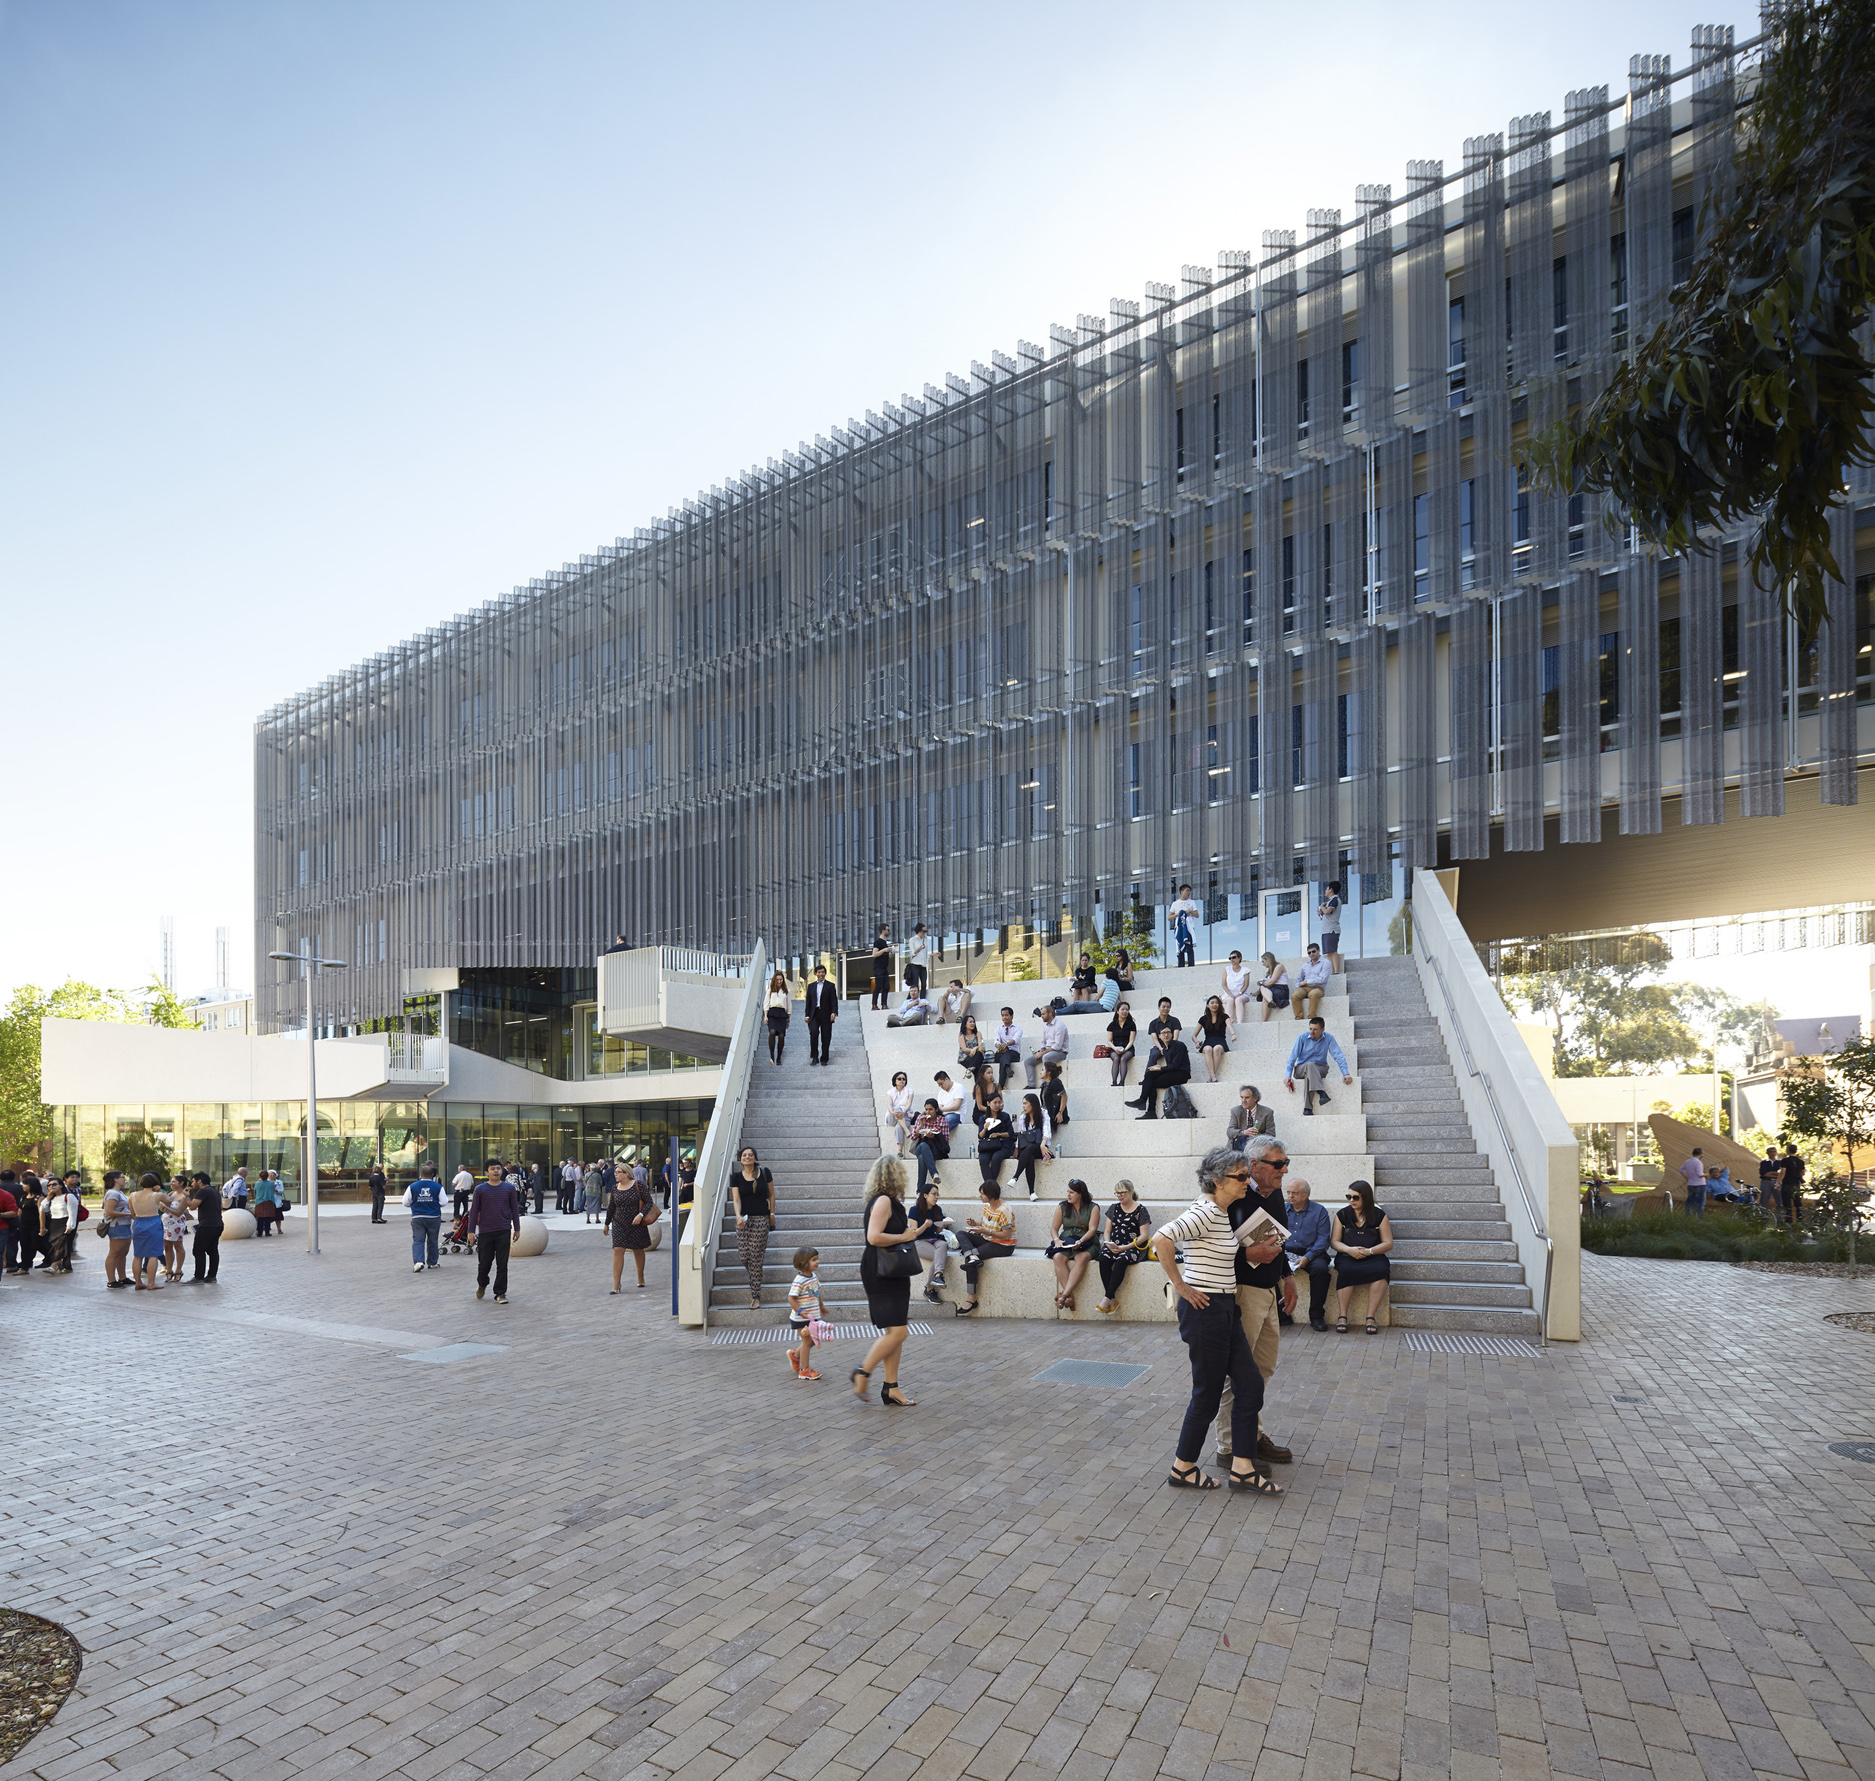 Melbourne School of Design by JWA and NADAAA (Photo: Nils Koenning)